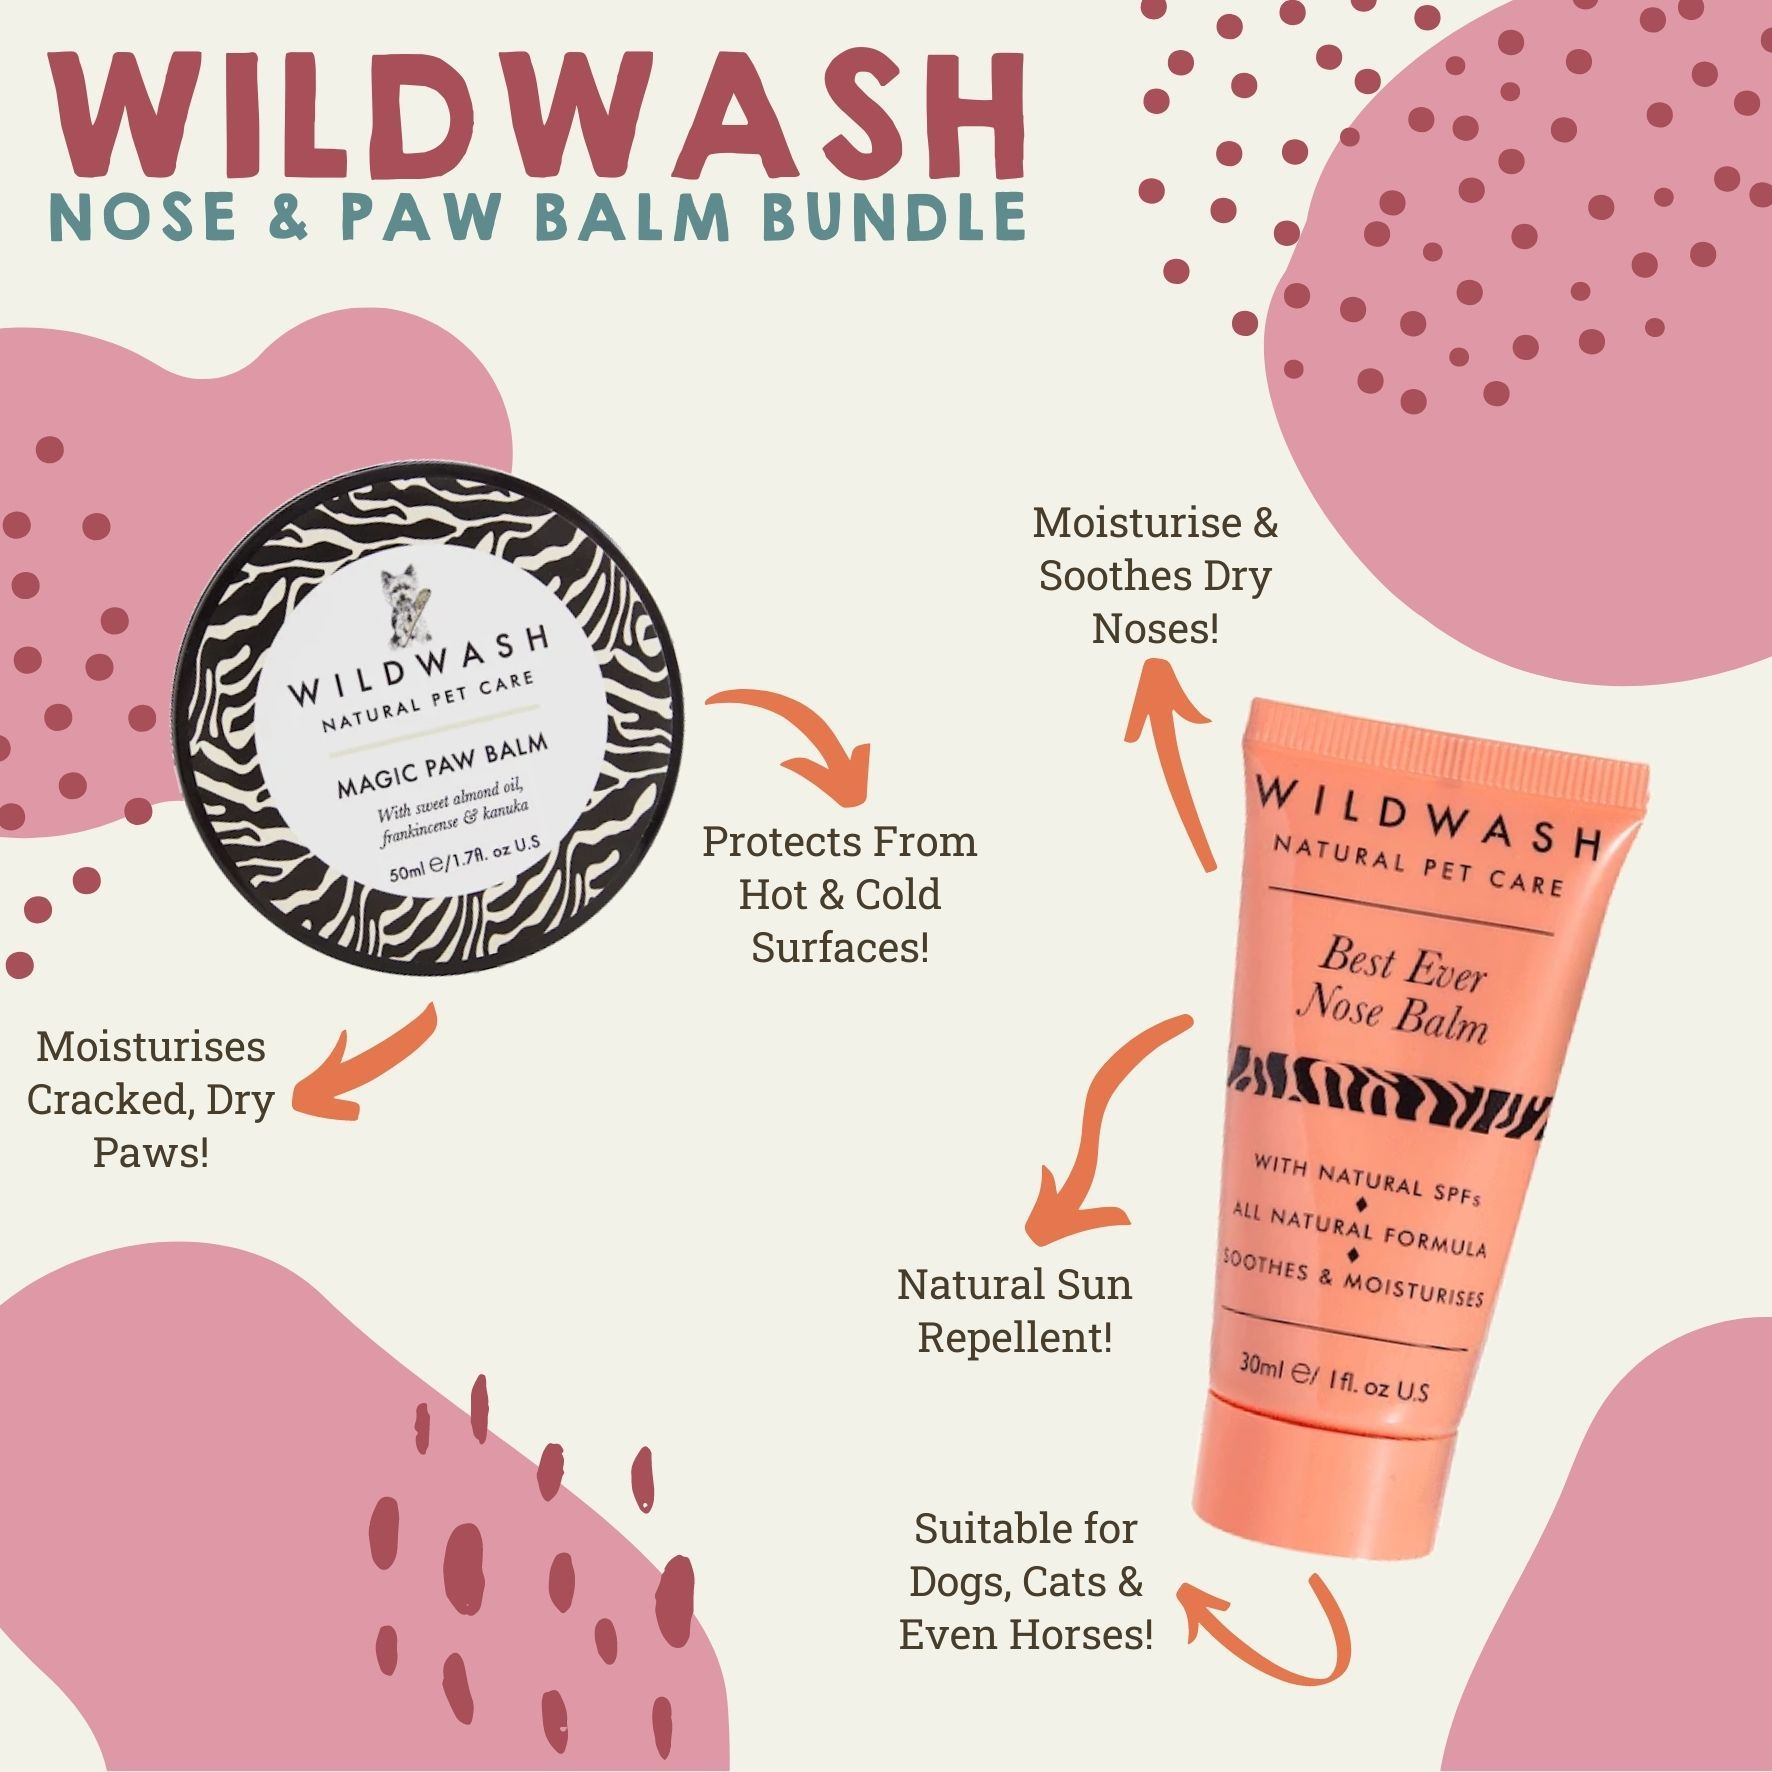 WildWash Nose & Paw Balm Bundle Dog Accessories Wildwash